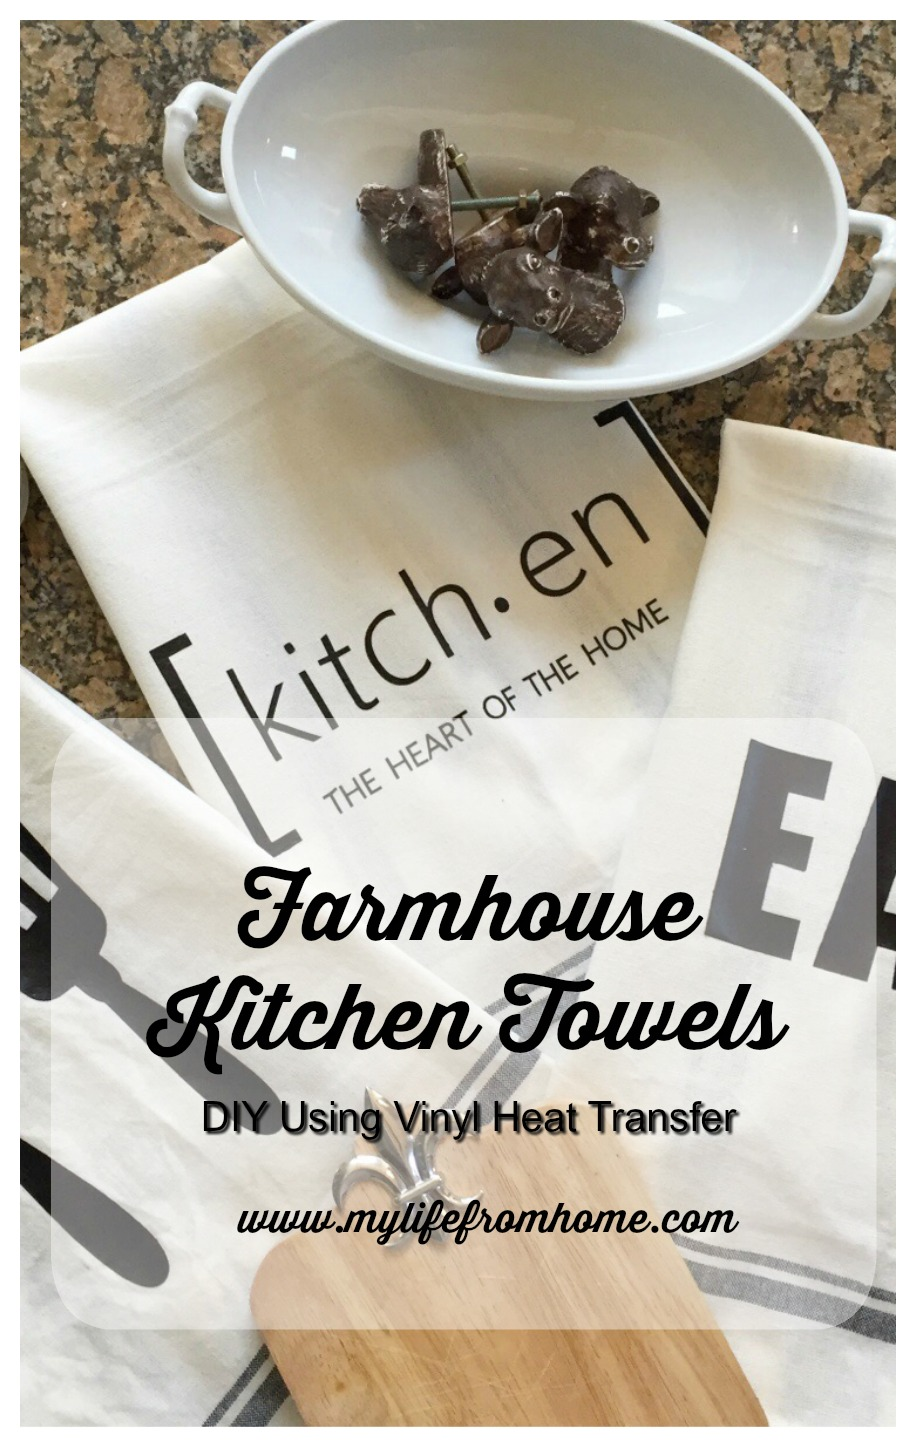 Farmhouse Kitchen Towels DIY Using Vinyl Heat Transfer Tutorial by www.mylifefromhome.com